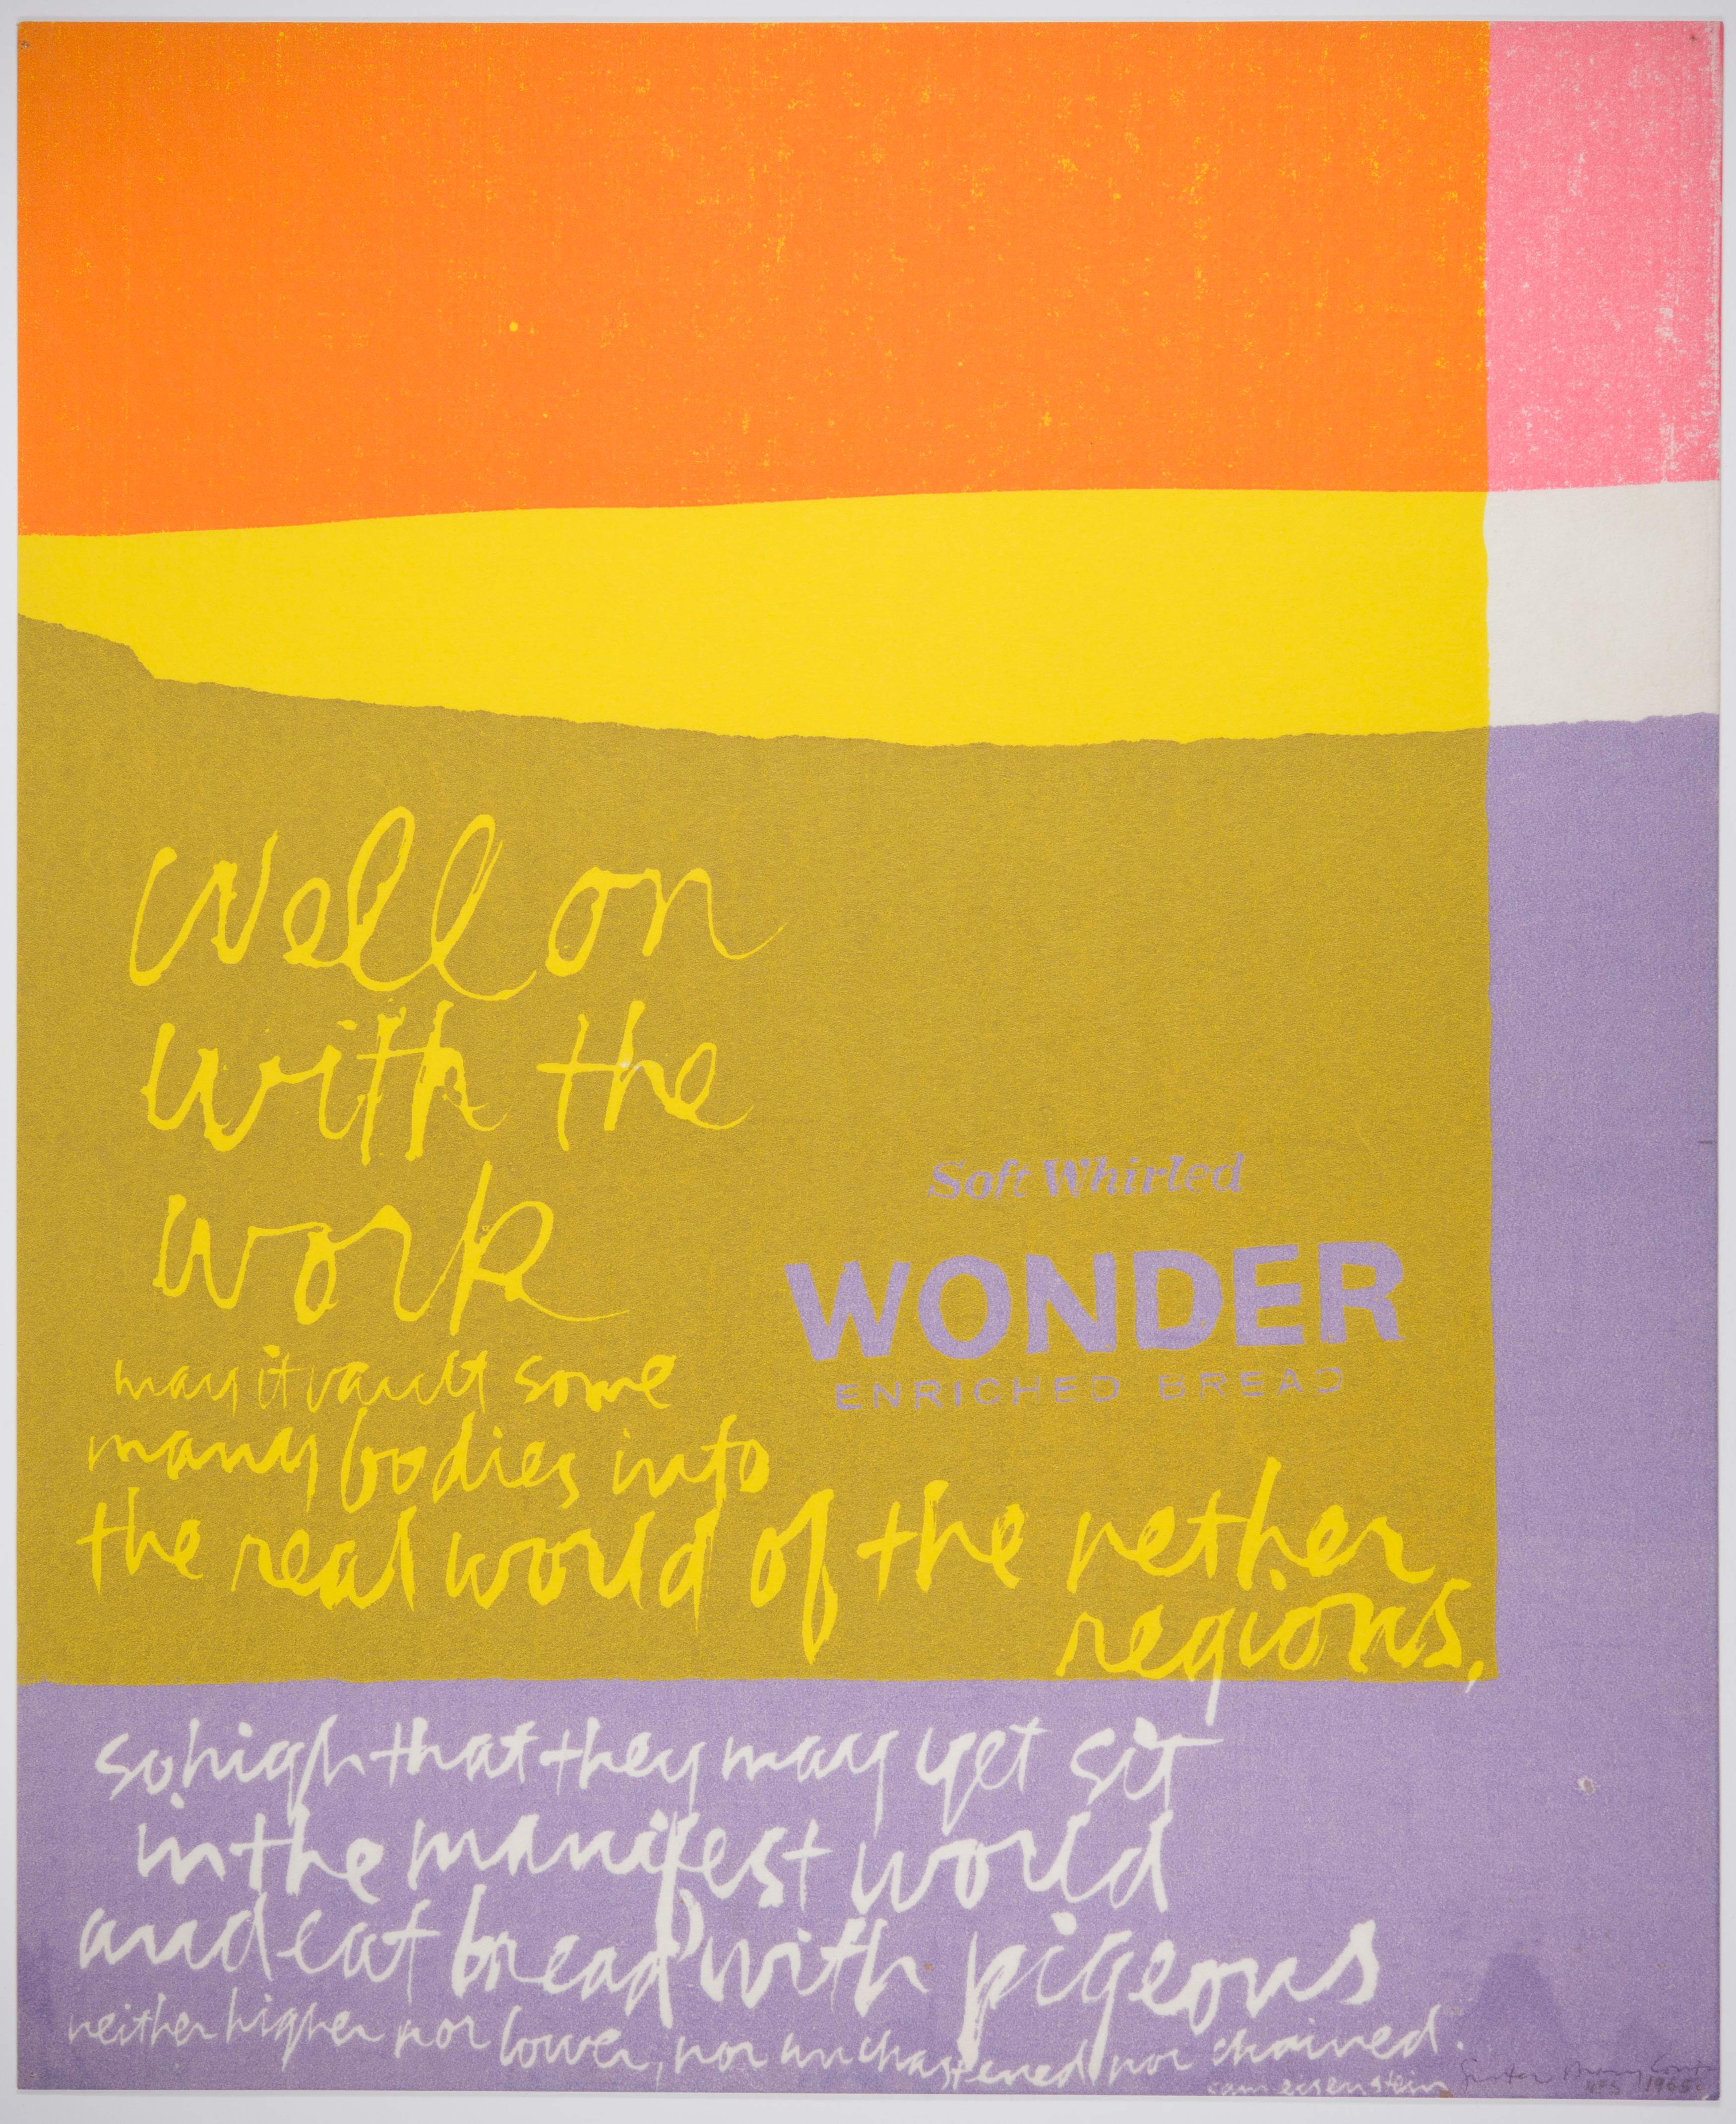 Corita Kent, well, on with the work, 1965